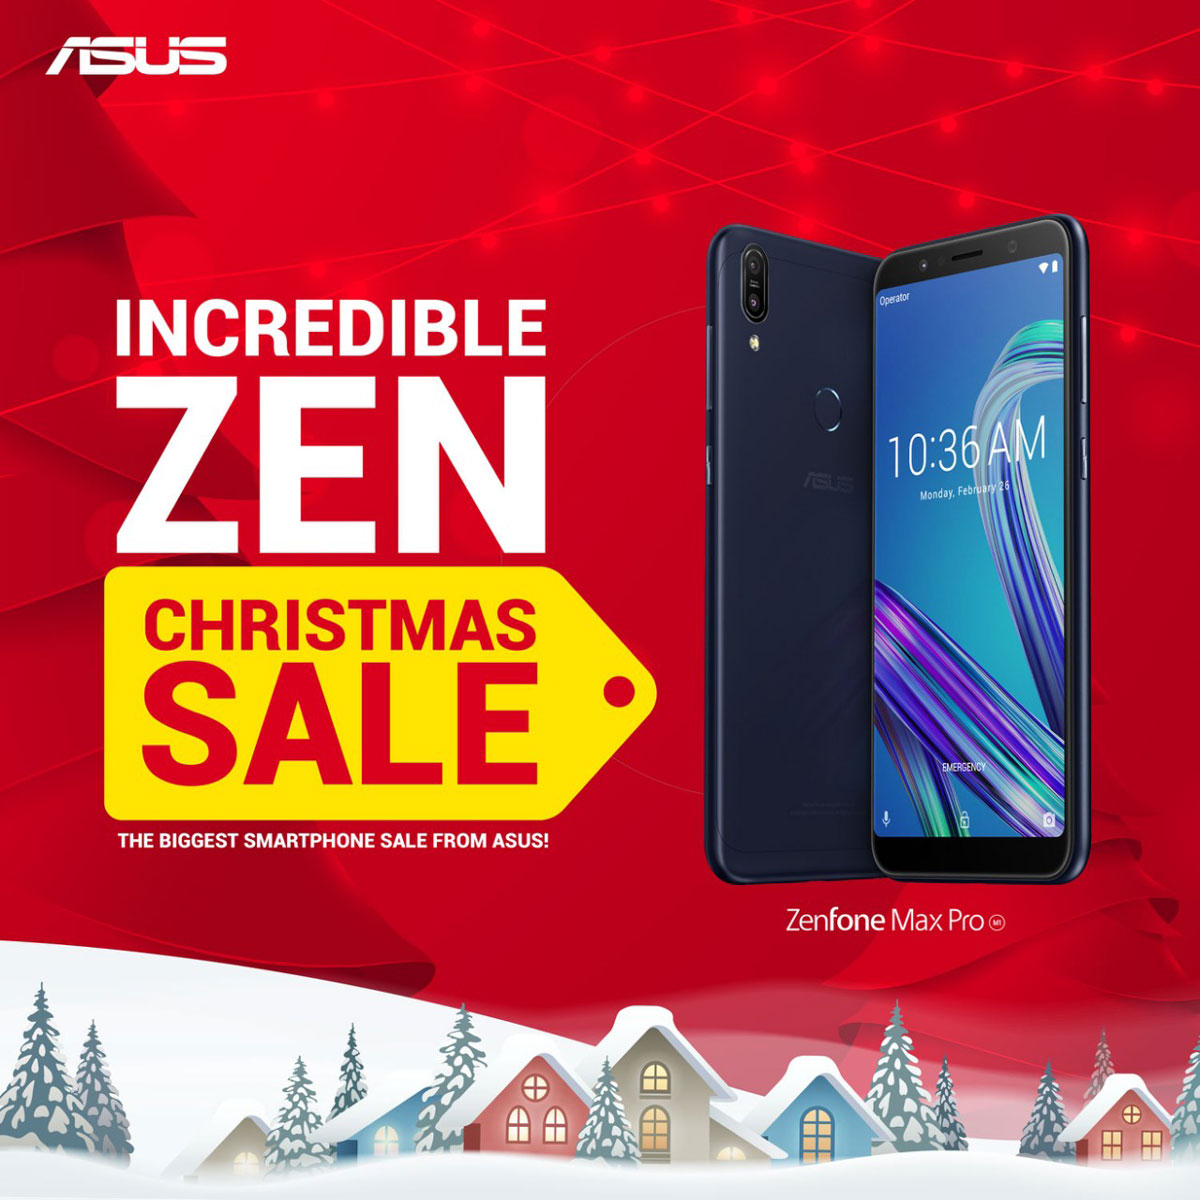 ASUS Outs Incredible ZEN Christmas Sale of 2018